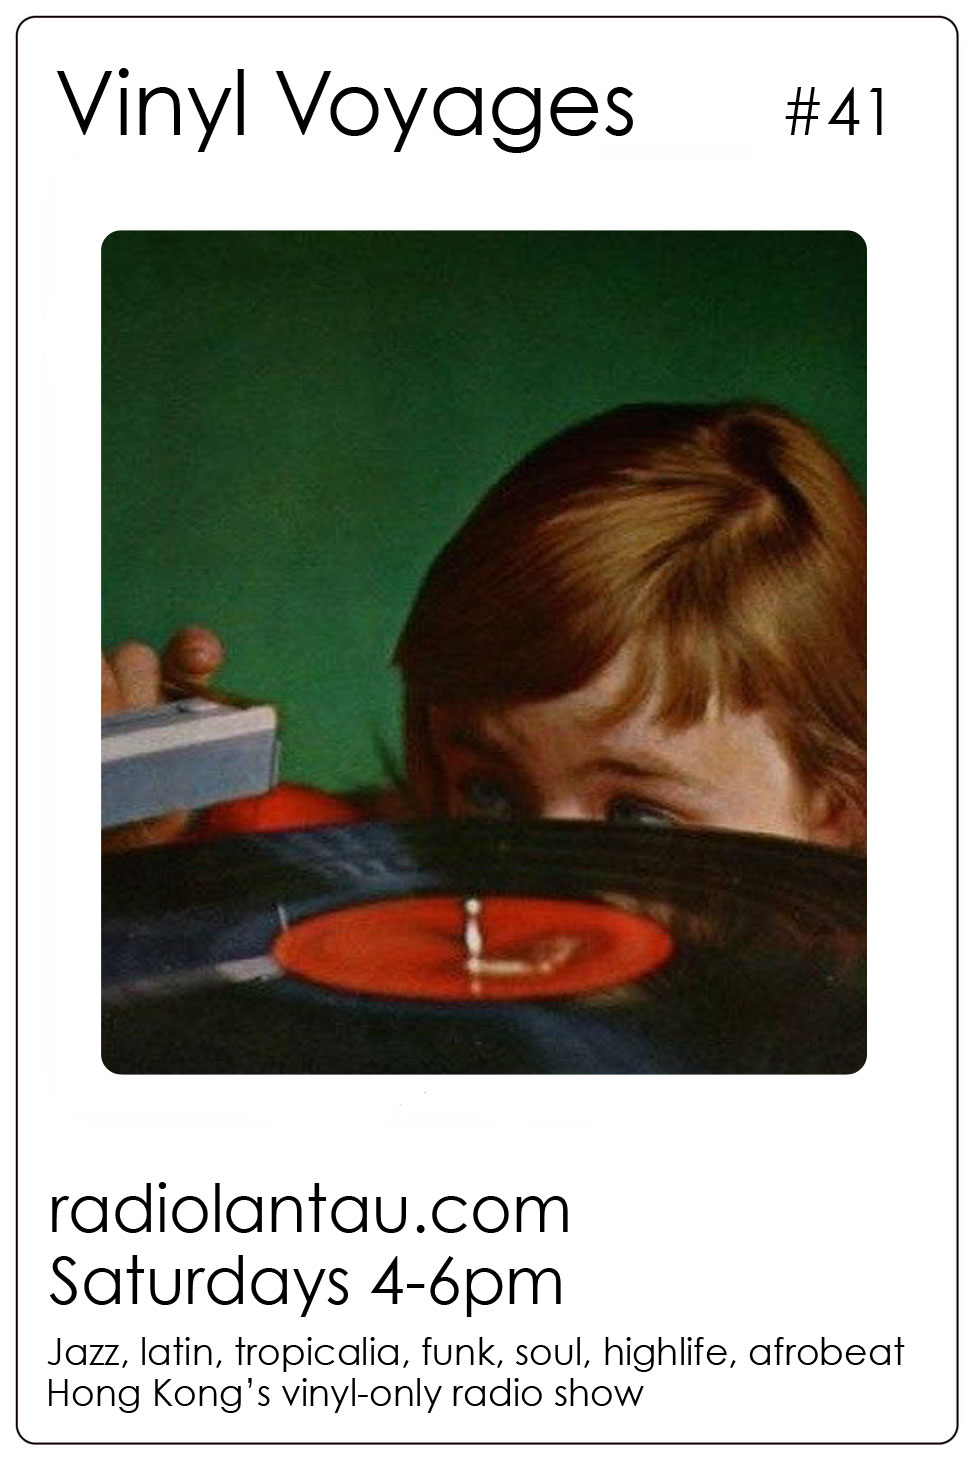 41.Vinyl-Voyages-show-forty-one Station News - RADIOLANTAU.COM